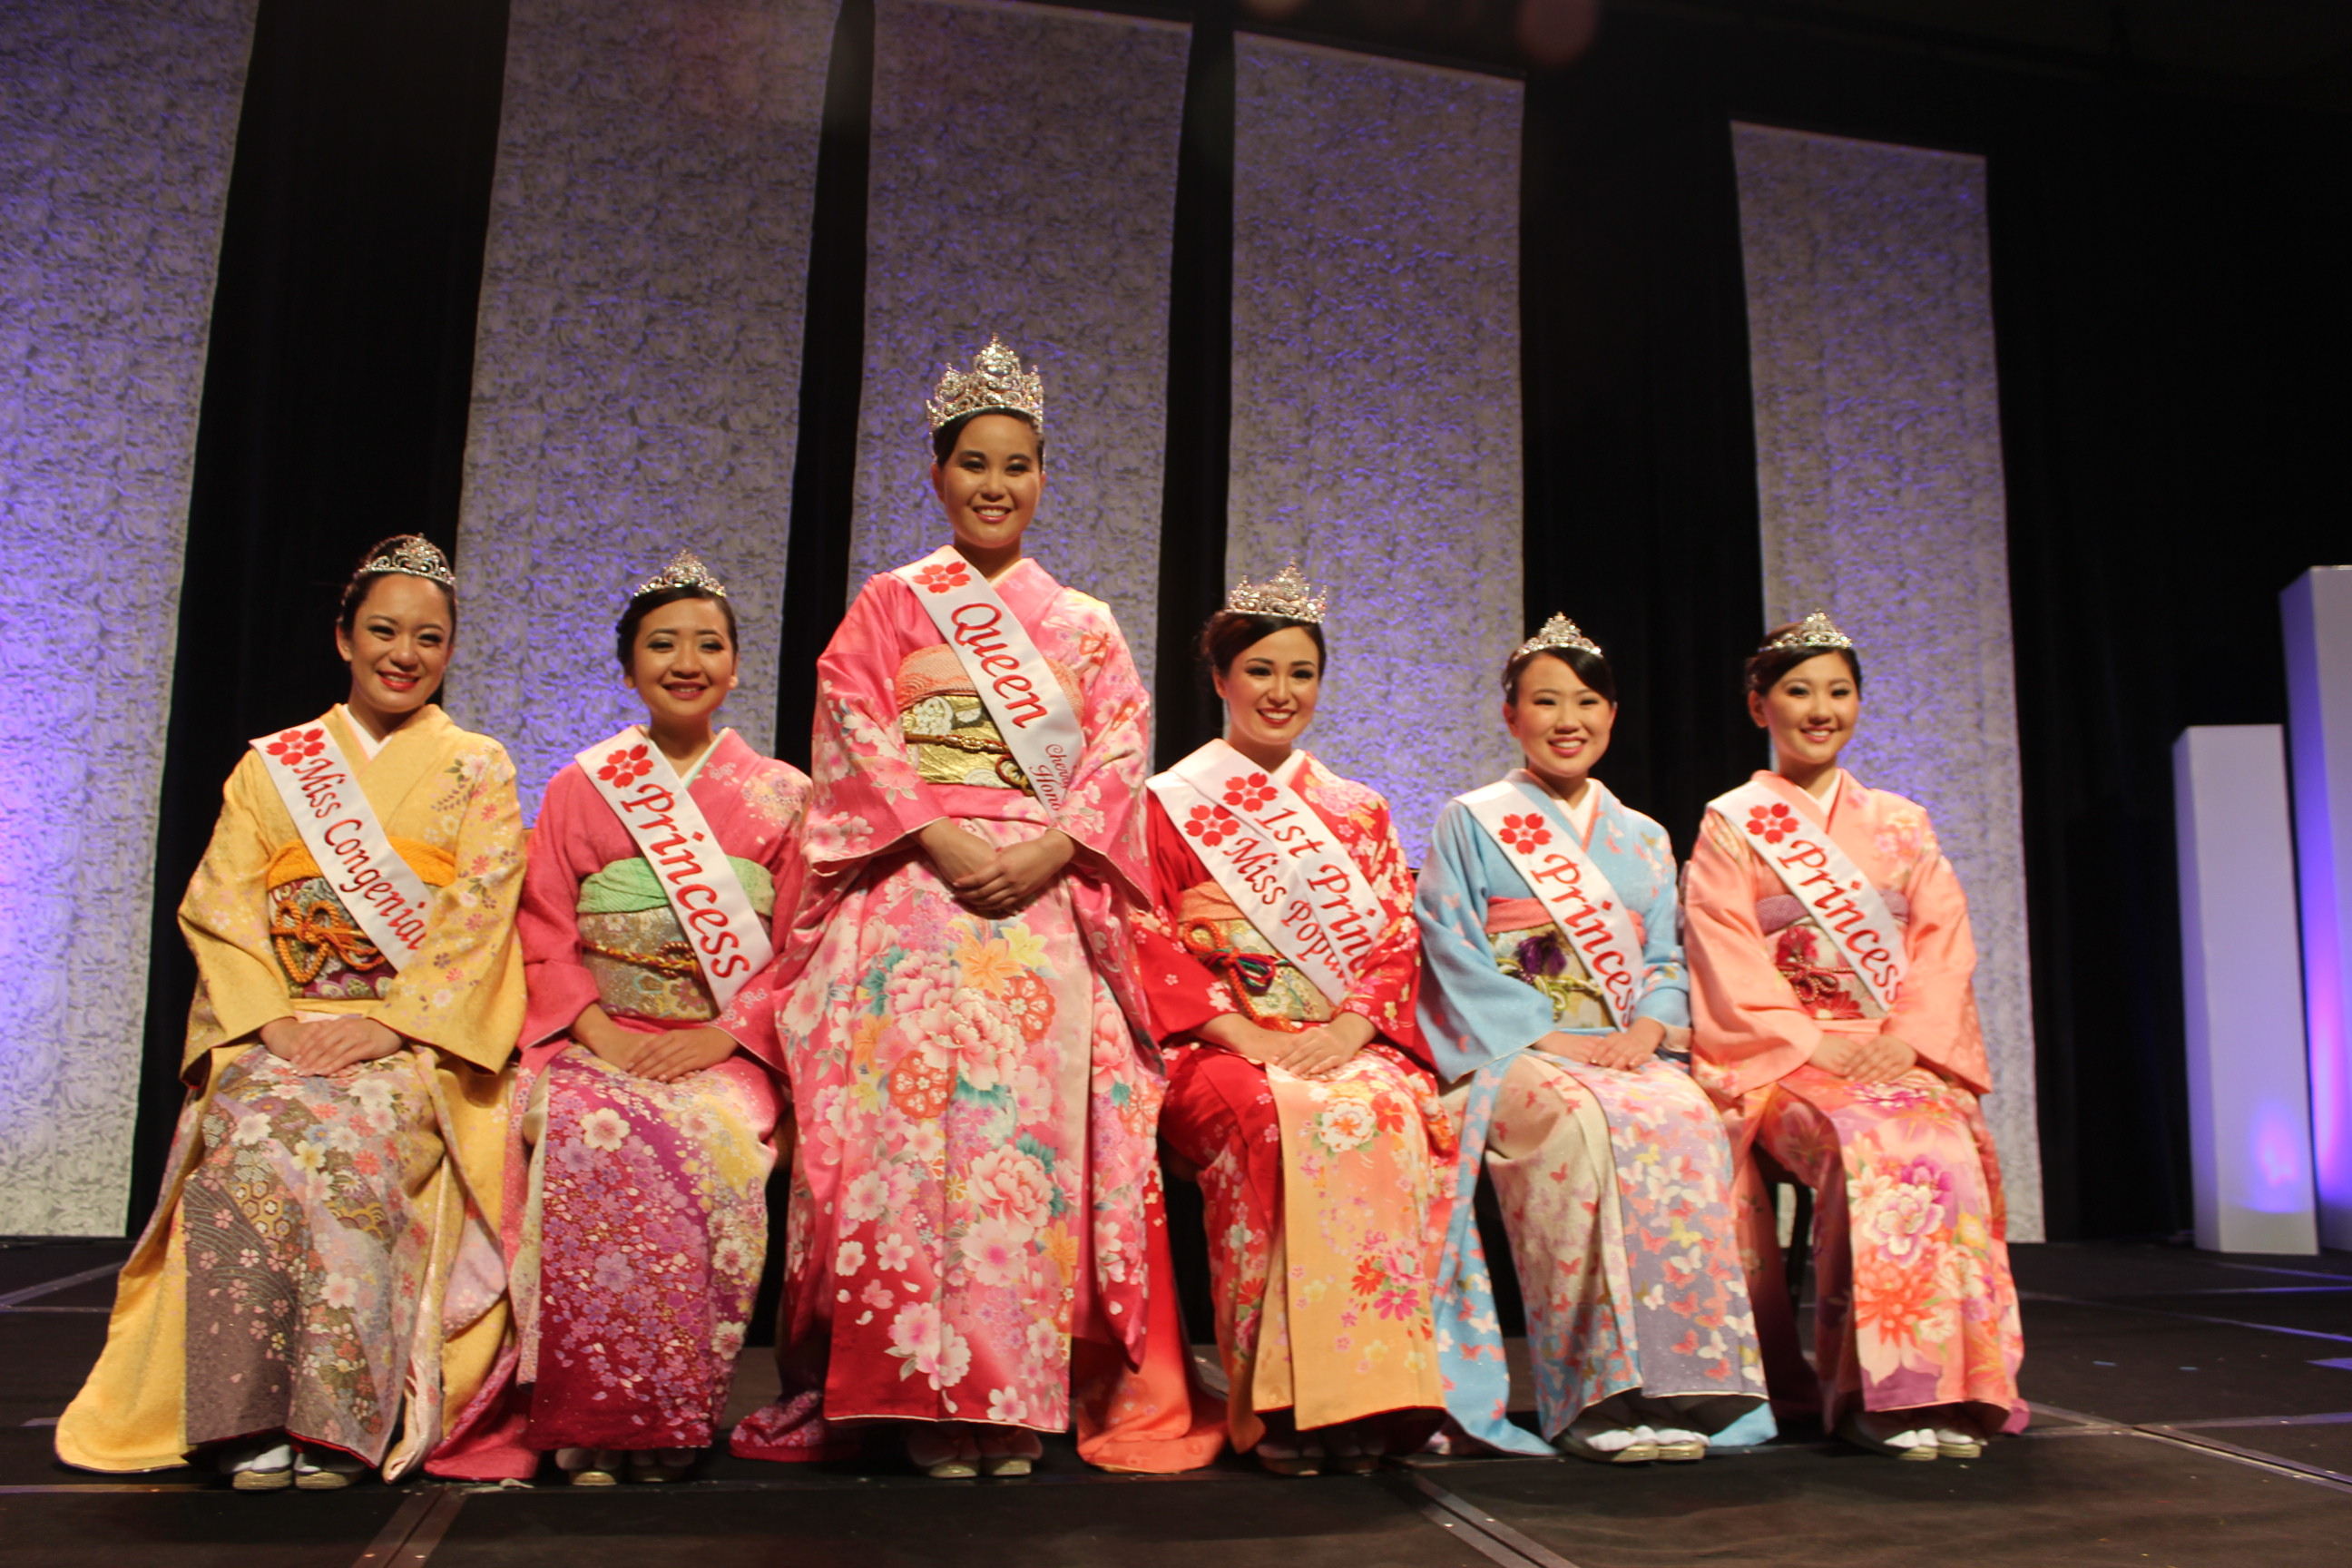 Group photo of the 65th Cherry Blossom Festival Court